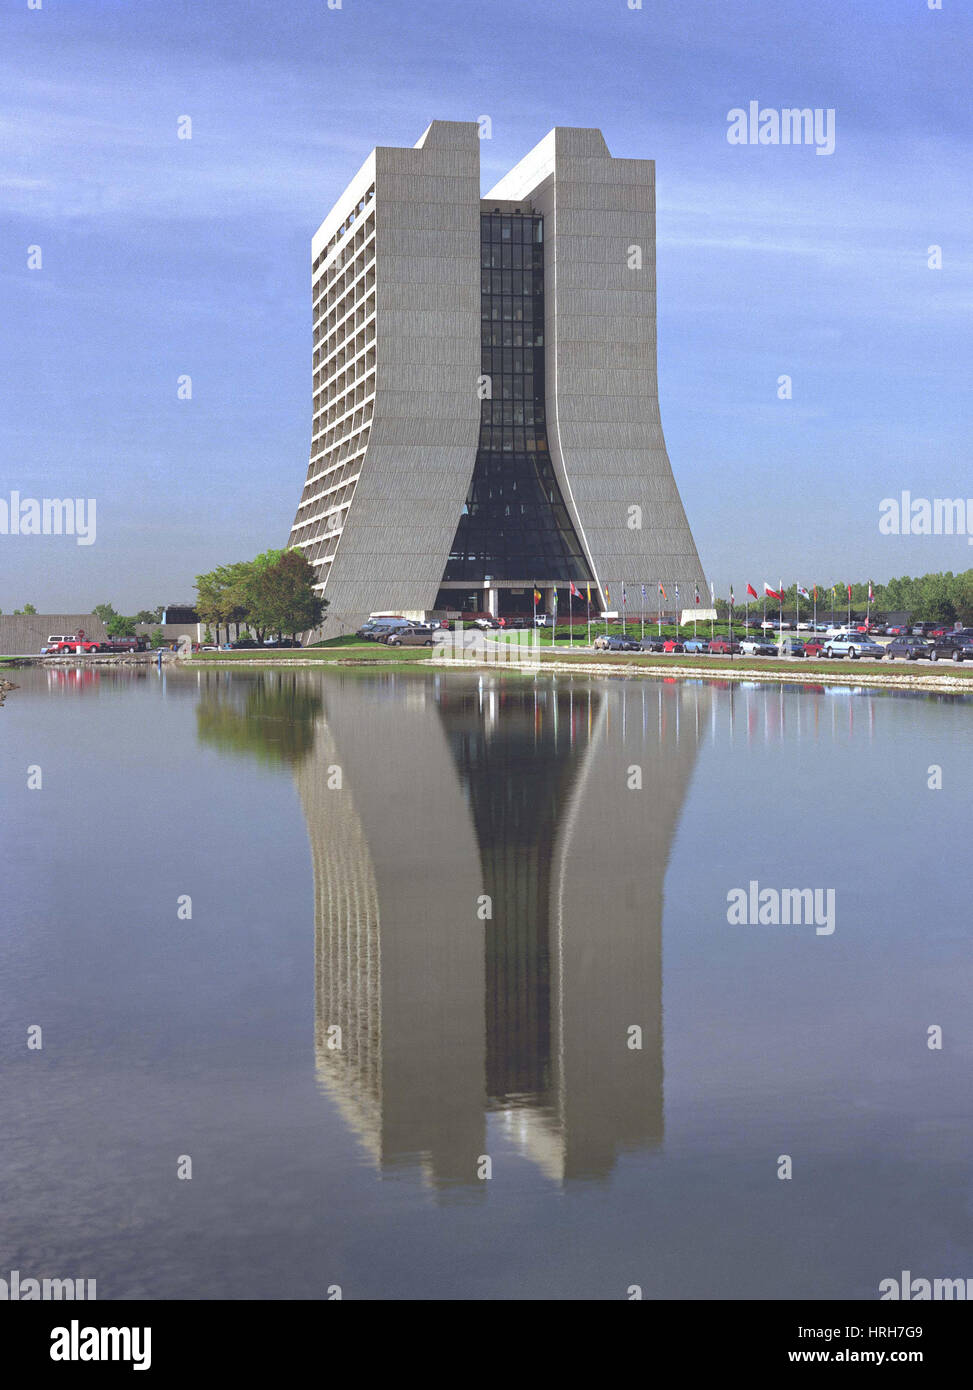 Wilson Hall at Fermilab - Stock Image